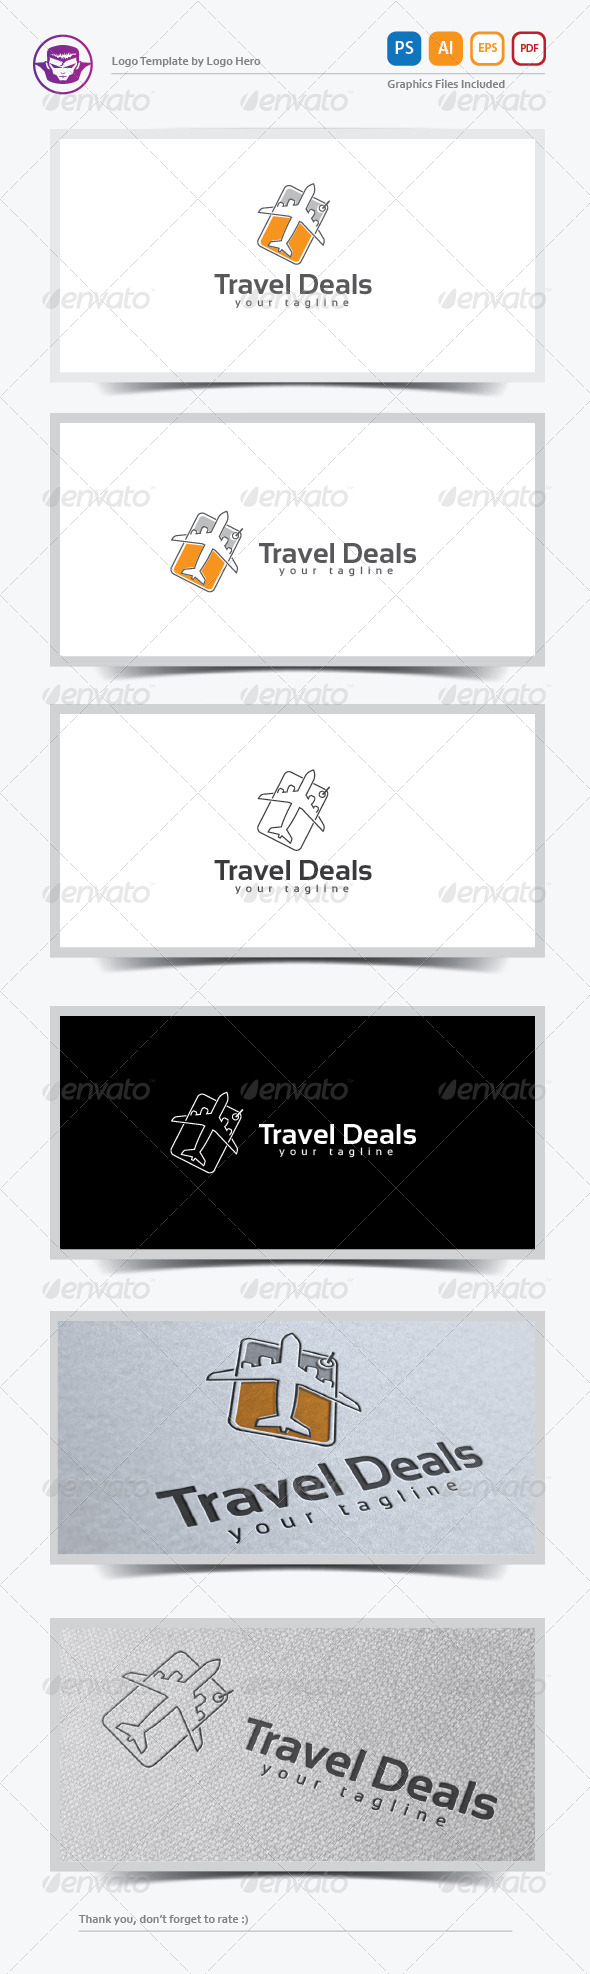 GraphicRiver Travel Deal Logo Template 8199026